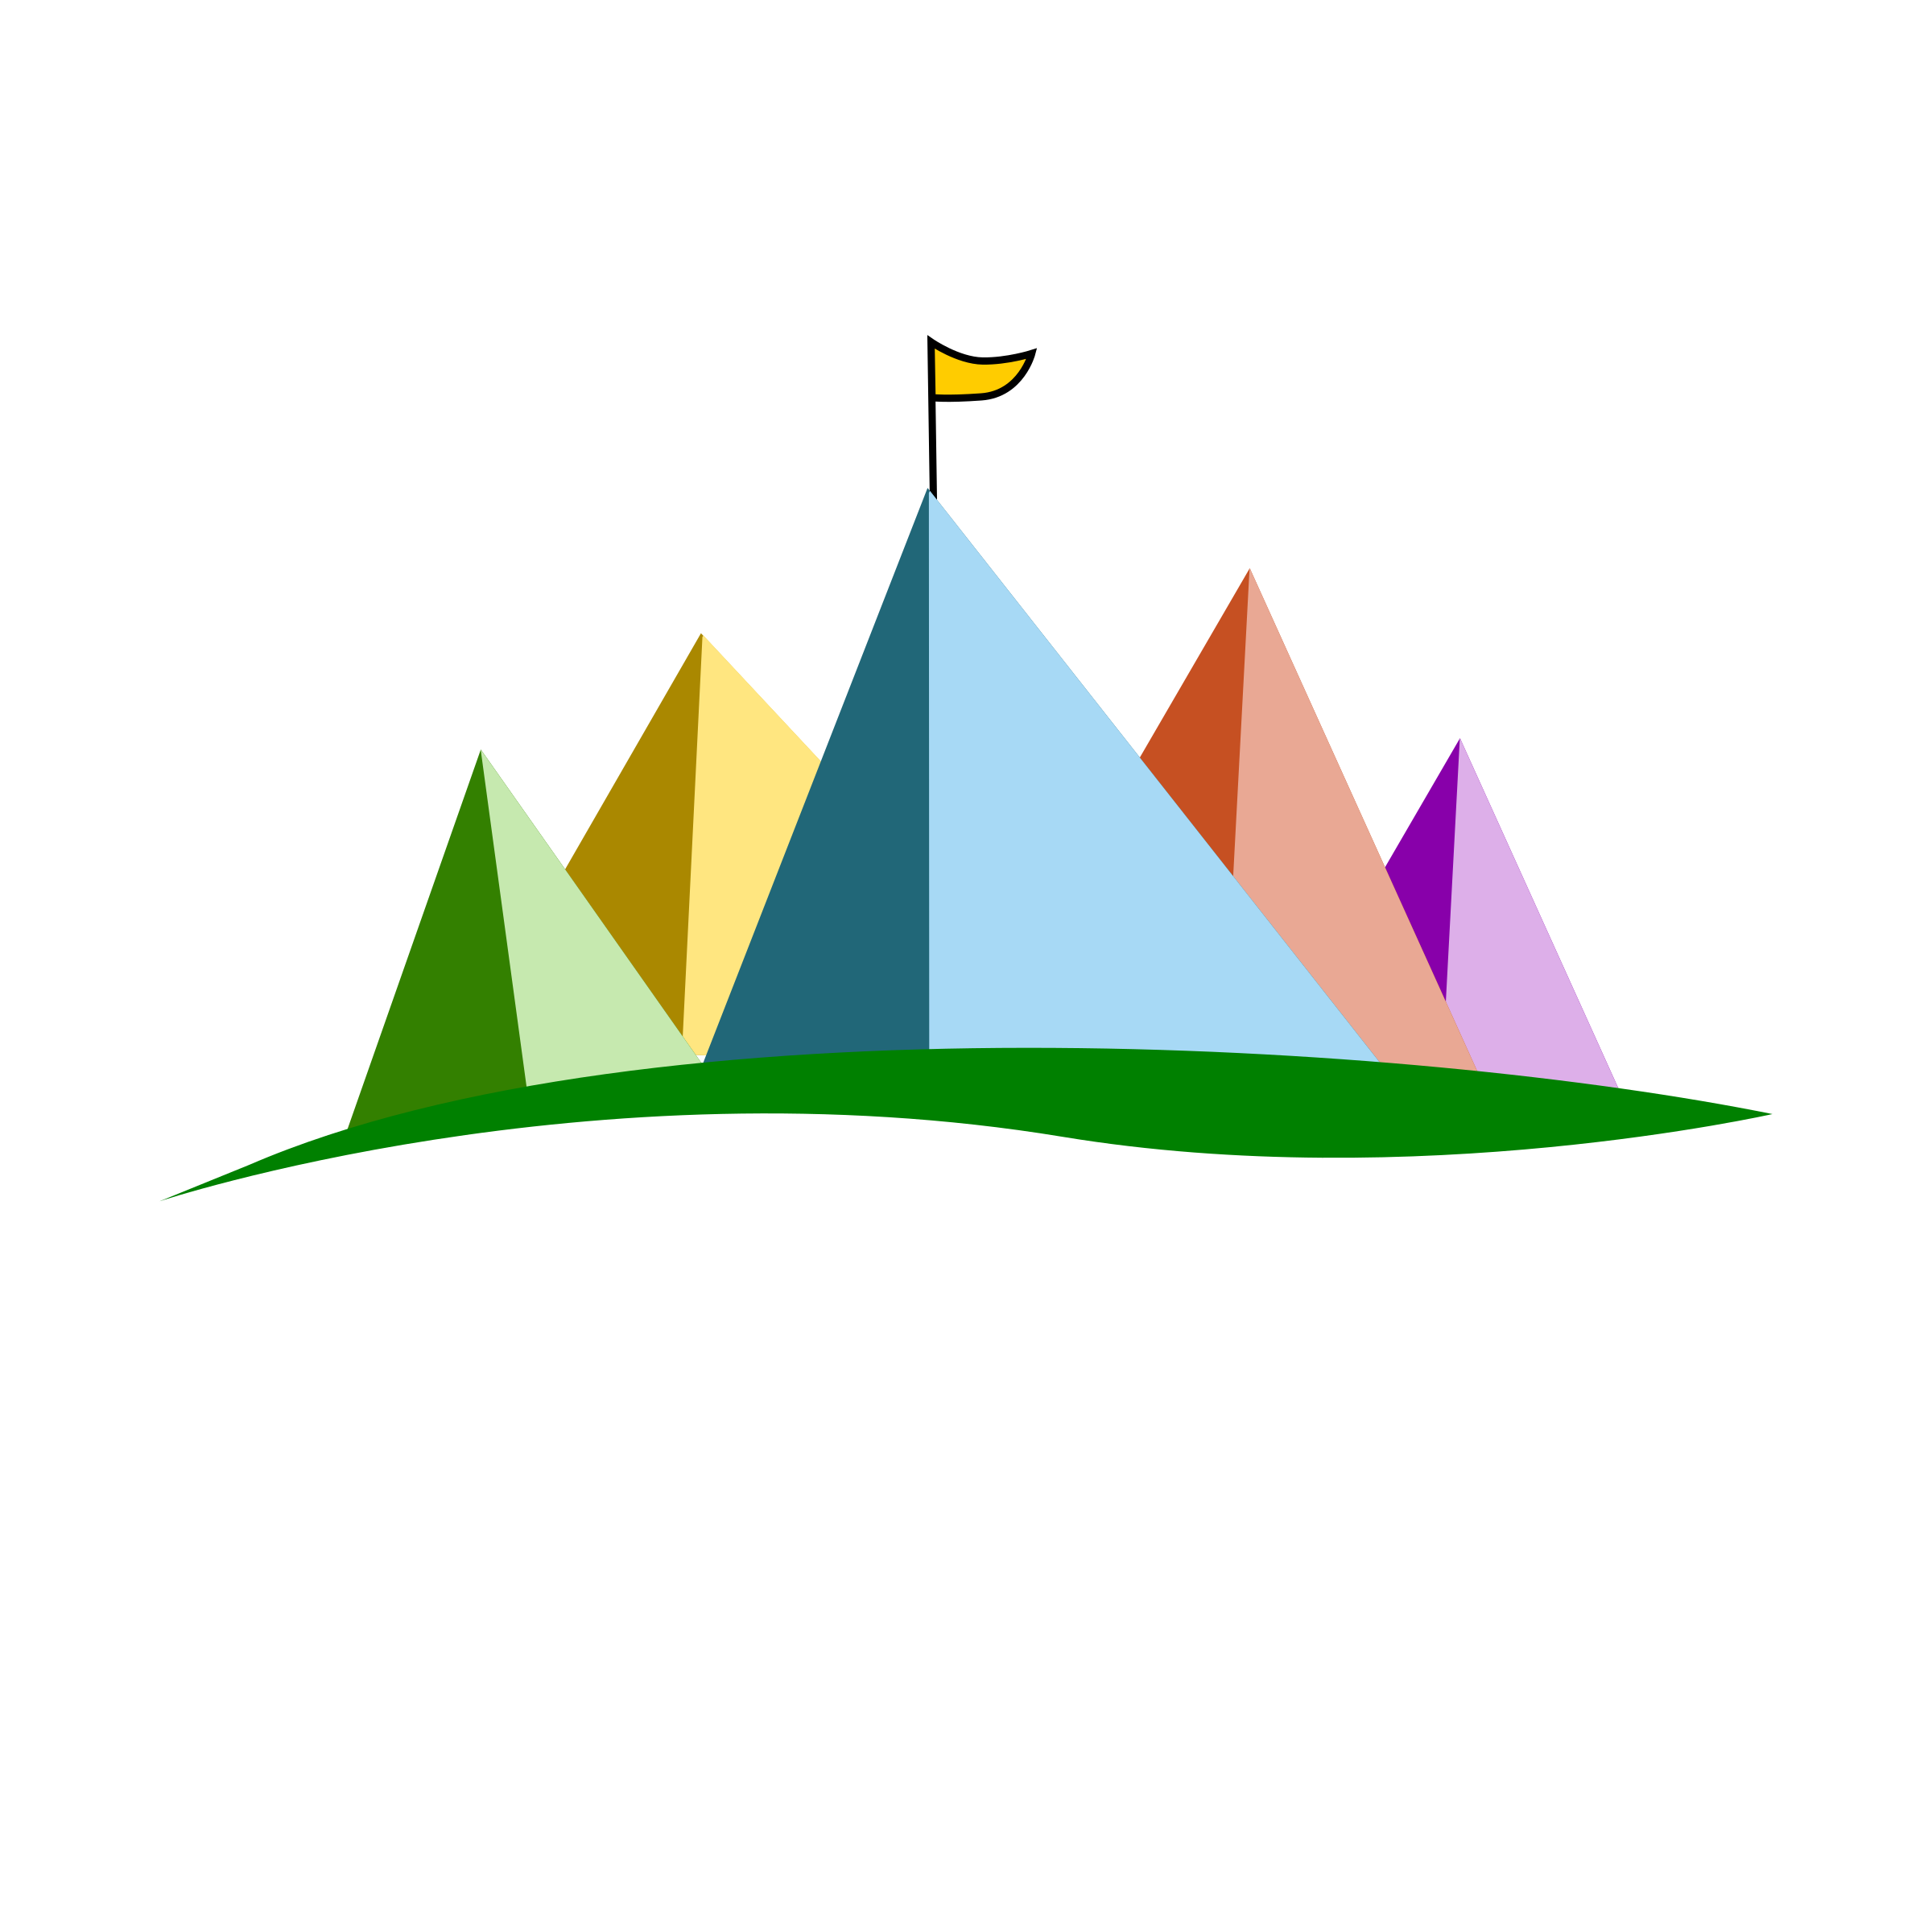 Camp area icons png. Clipart map camping